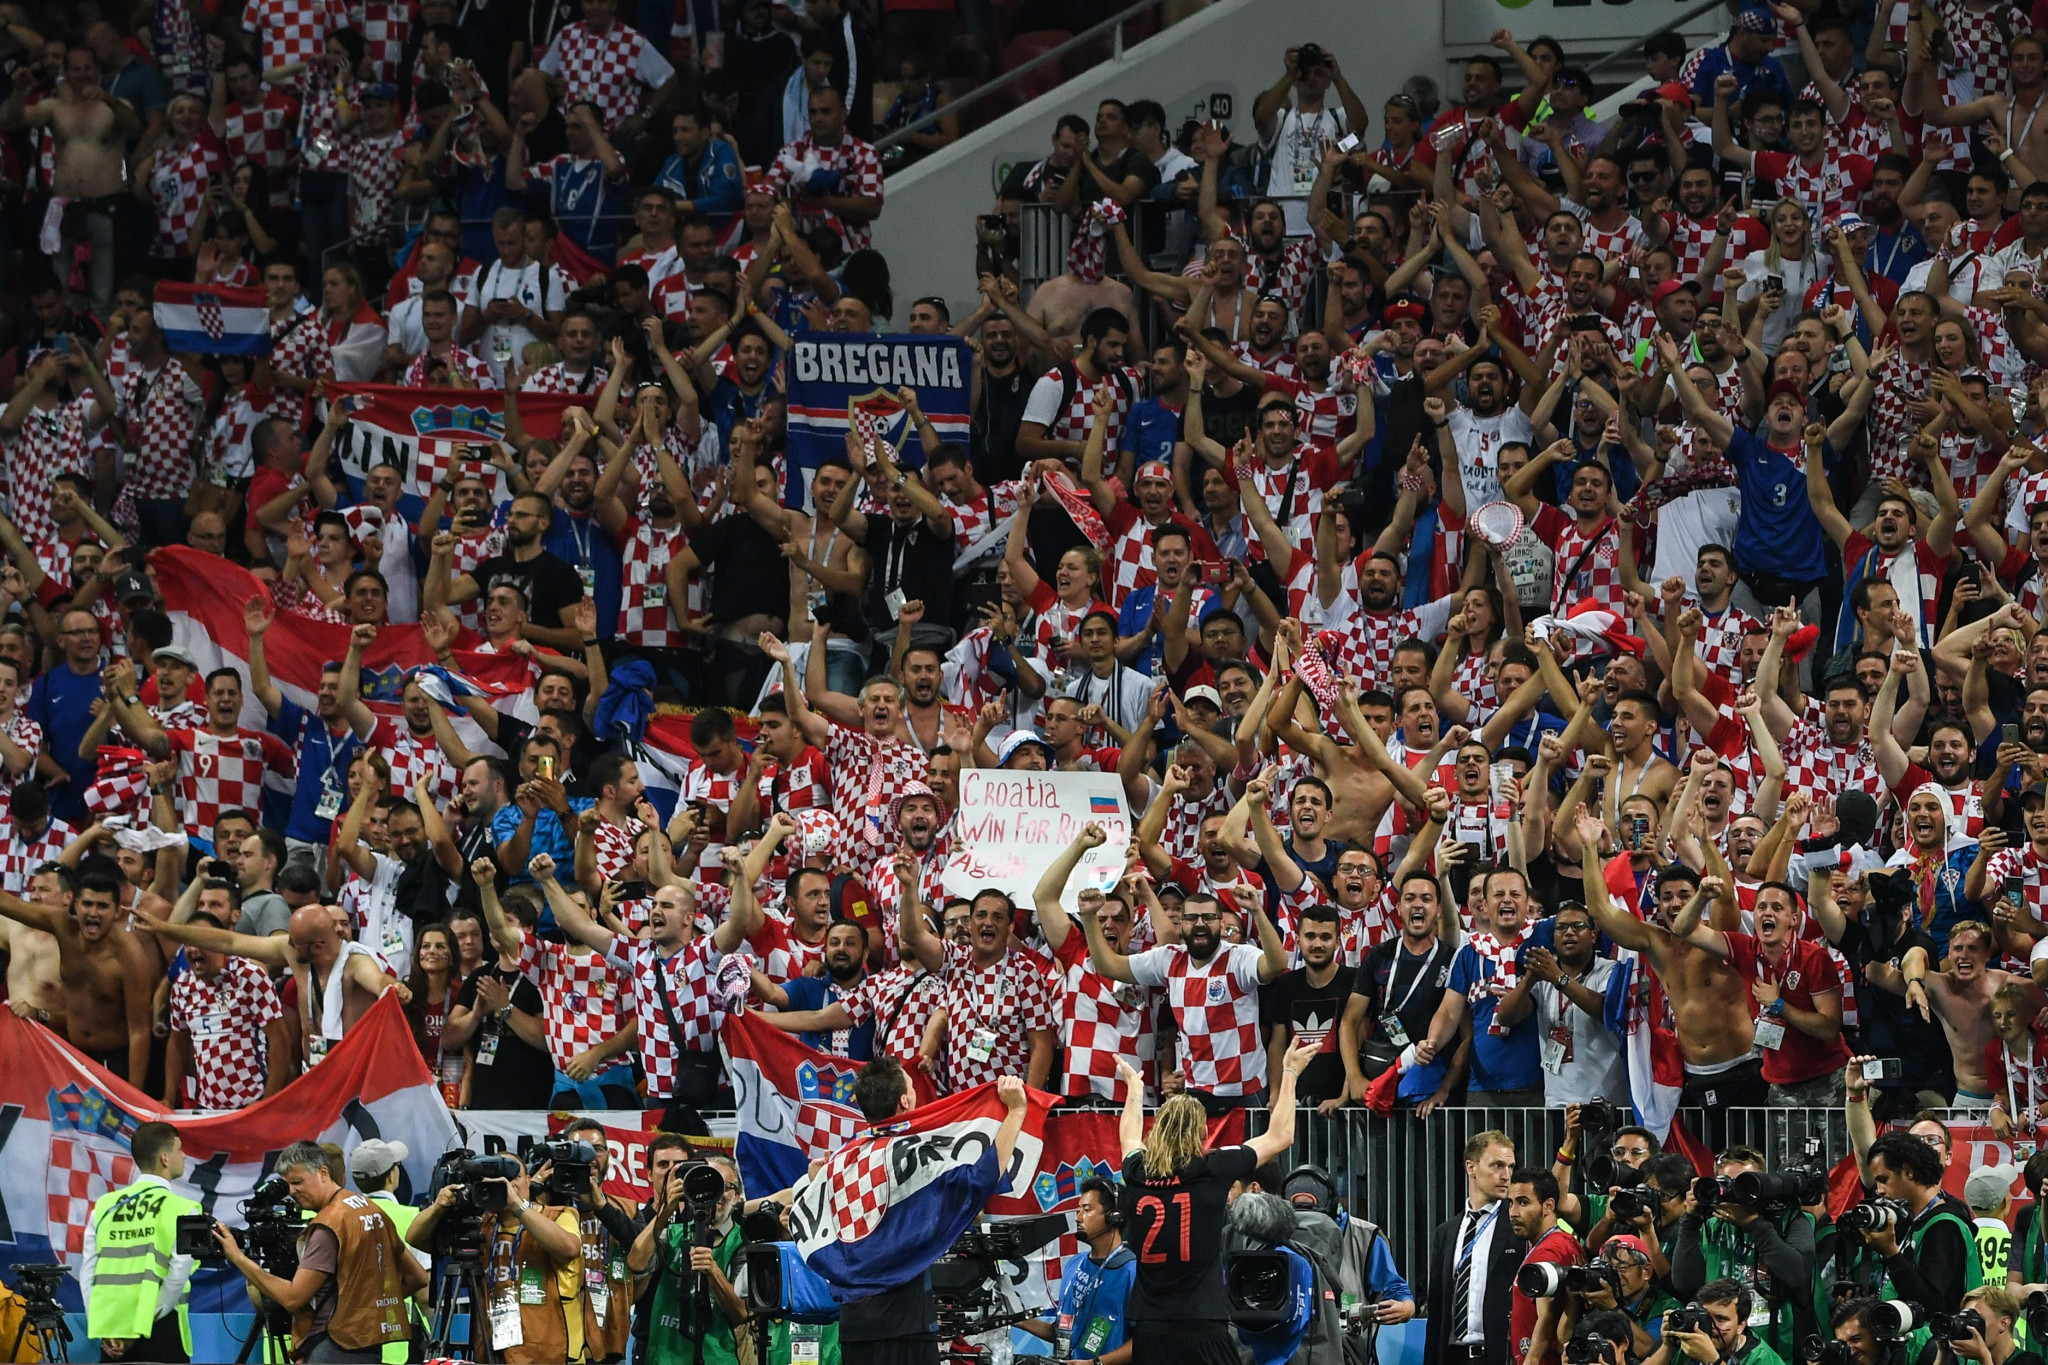 Croatia supporters celebrate their team's victory ©Getty Images